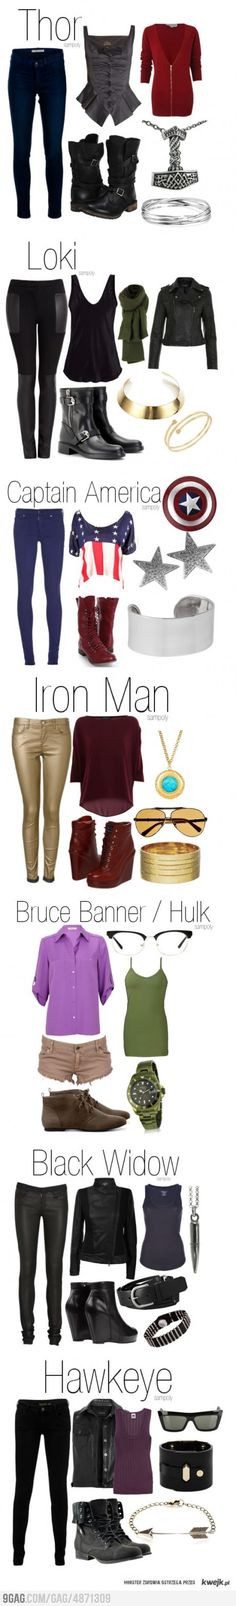 Avengers fashion. You know what would be 'super' awesome? If I were a size 2 to look cute in this stuff.